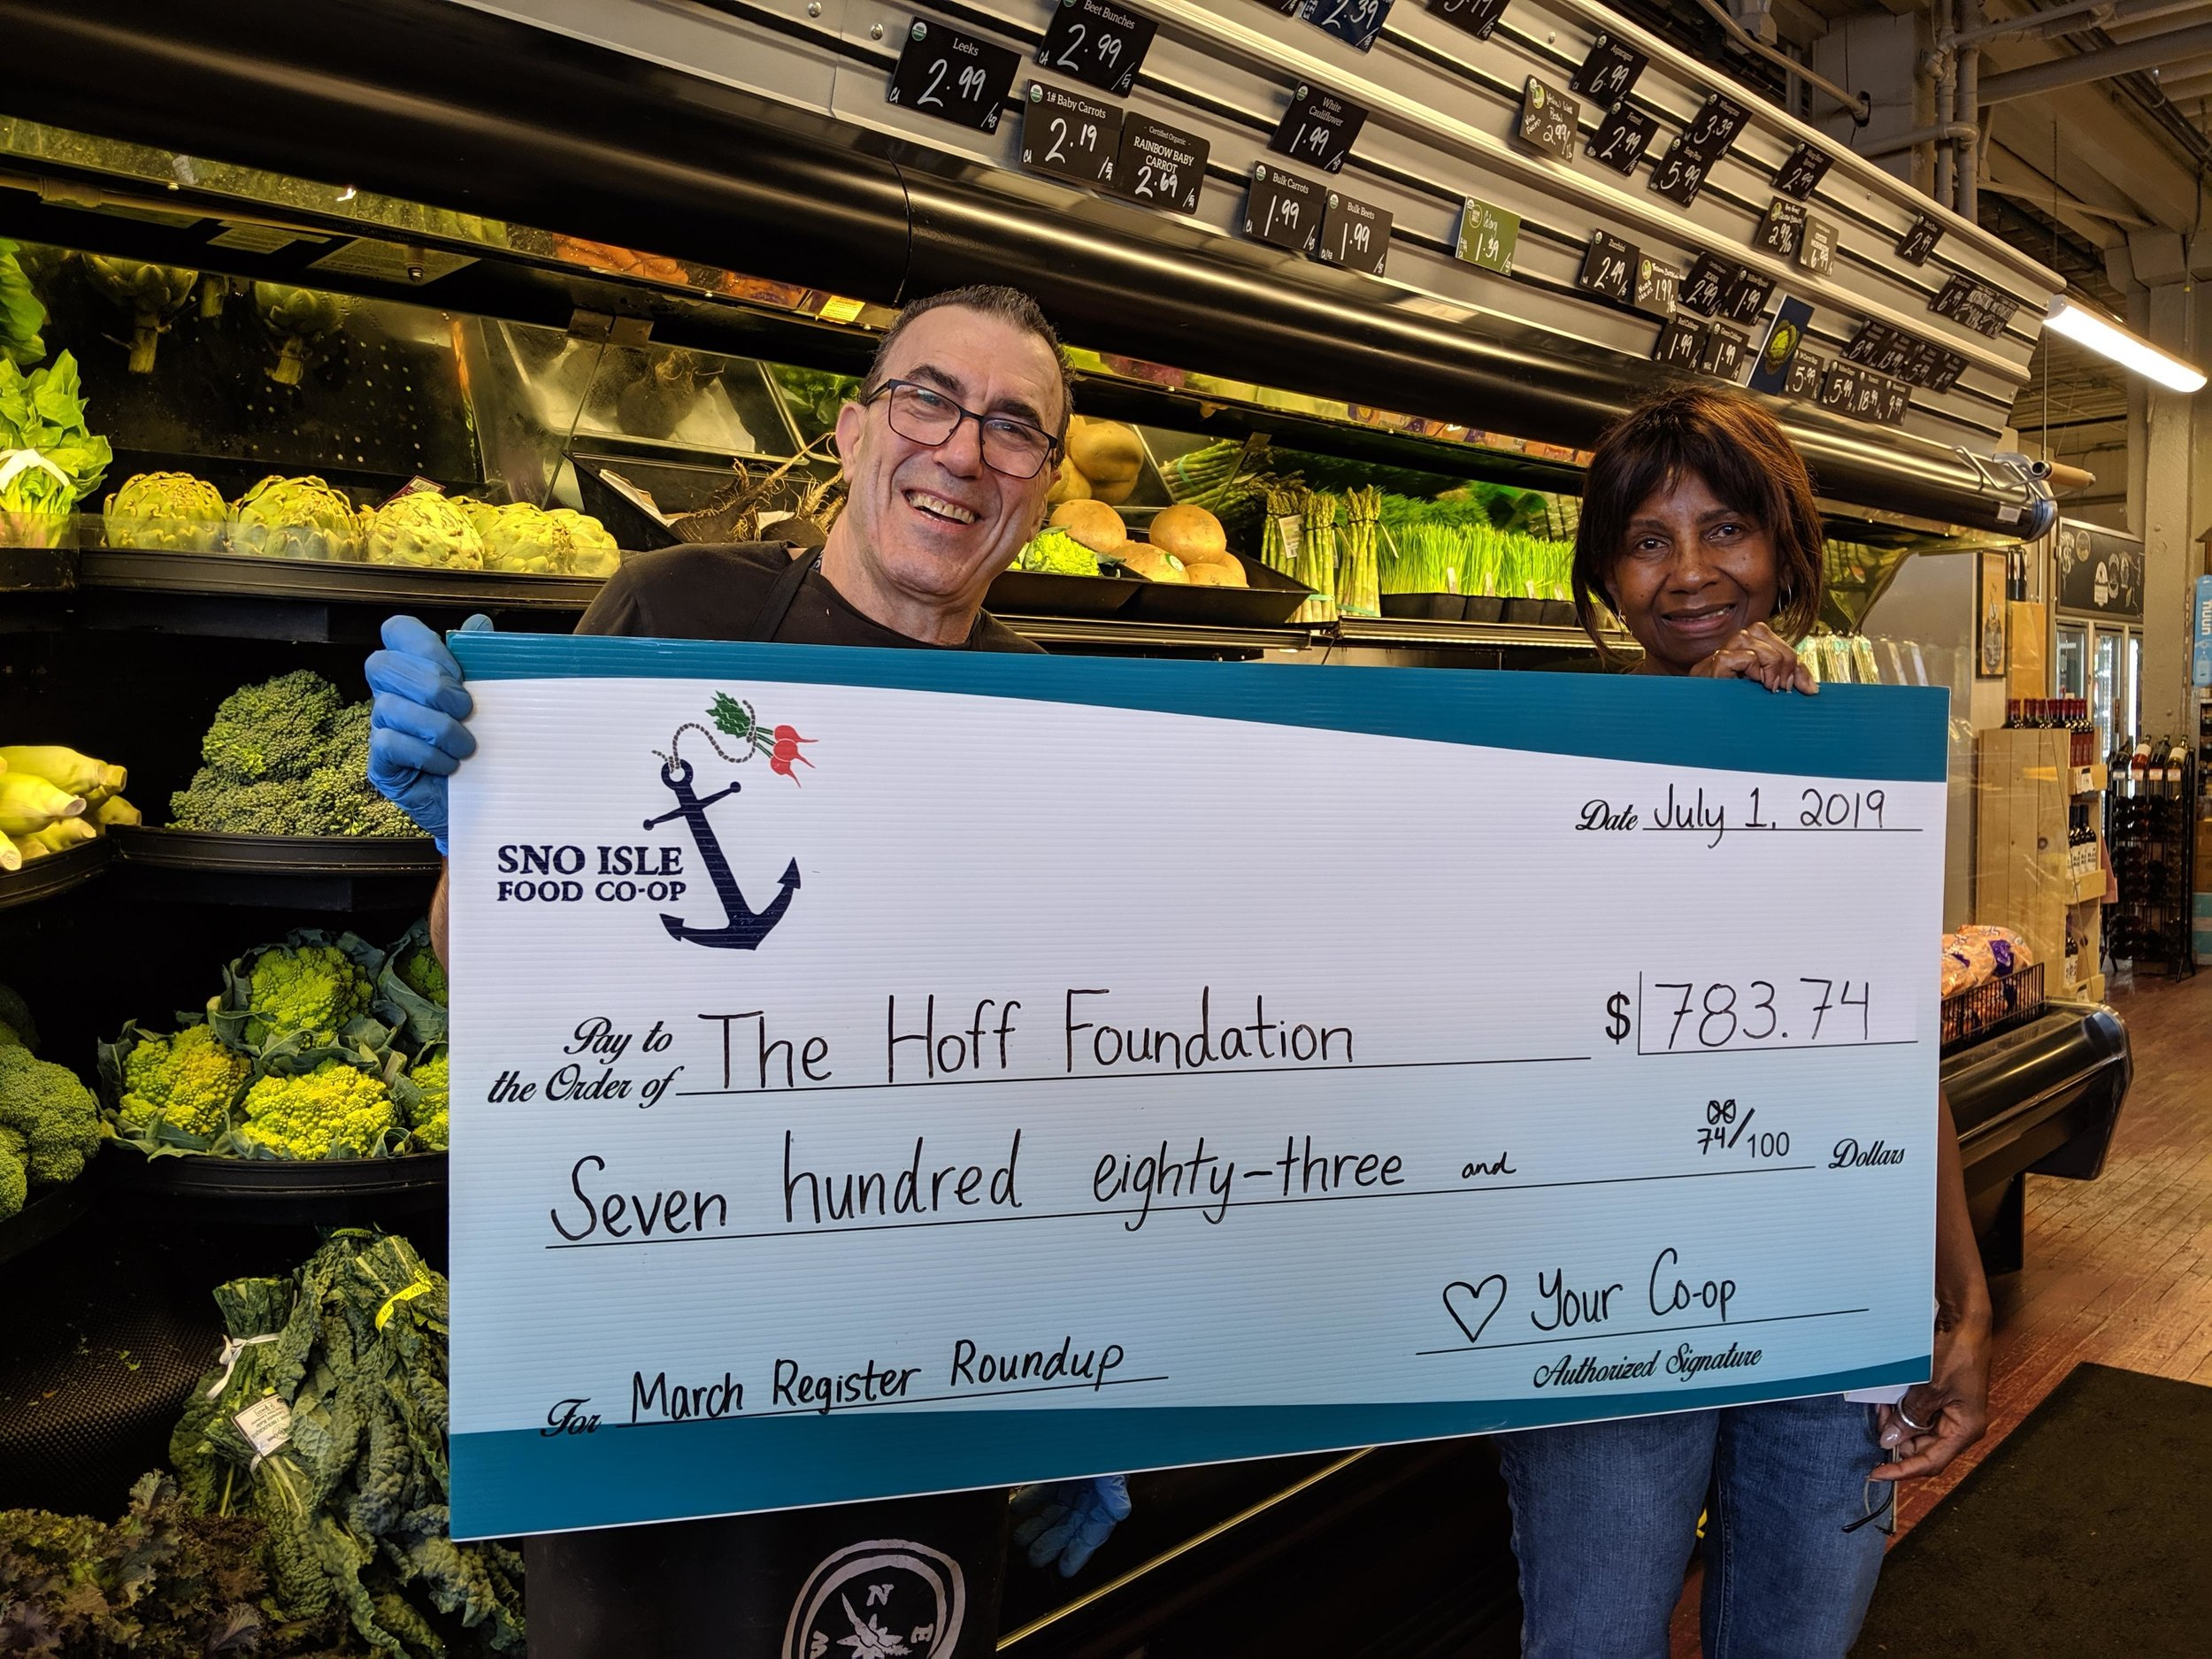 hoff foundation check.jpg